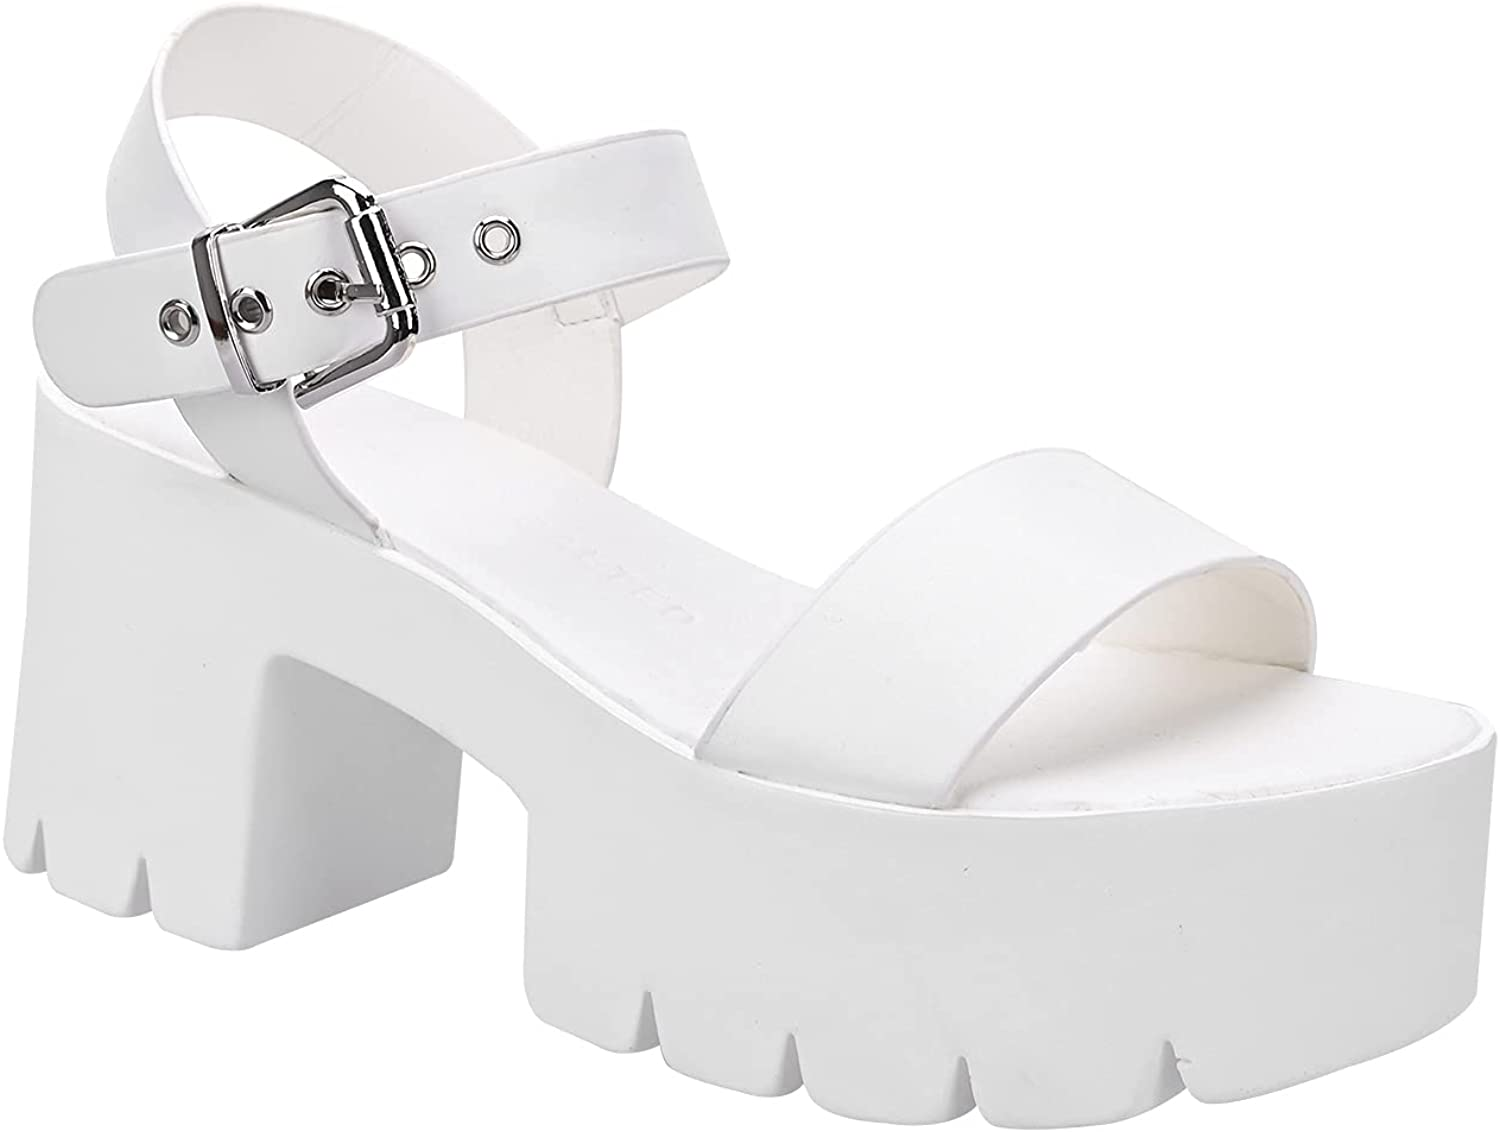 READYSALTED Open Toe Band Ankle Strap Buckle Casual Comfort Chunky Platform Sandals for Women (JAFFA20)